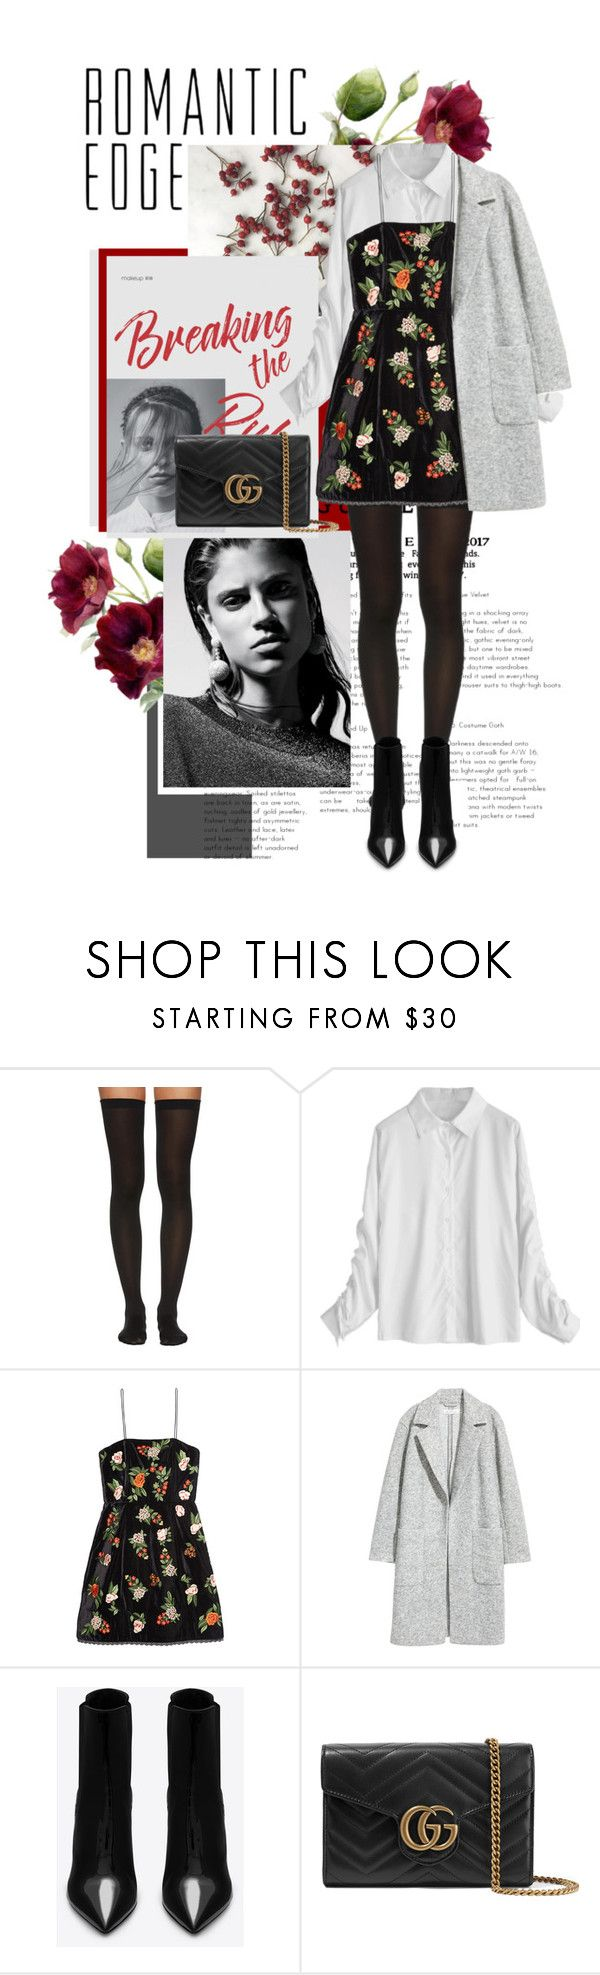 """Romantic Edge"" by fe-y ❤ liked on Polyvore featuring Wolford, Alice + Olivia, H&M, Yves Saint Laurent and Gucci"